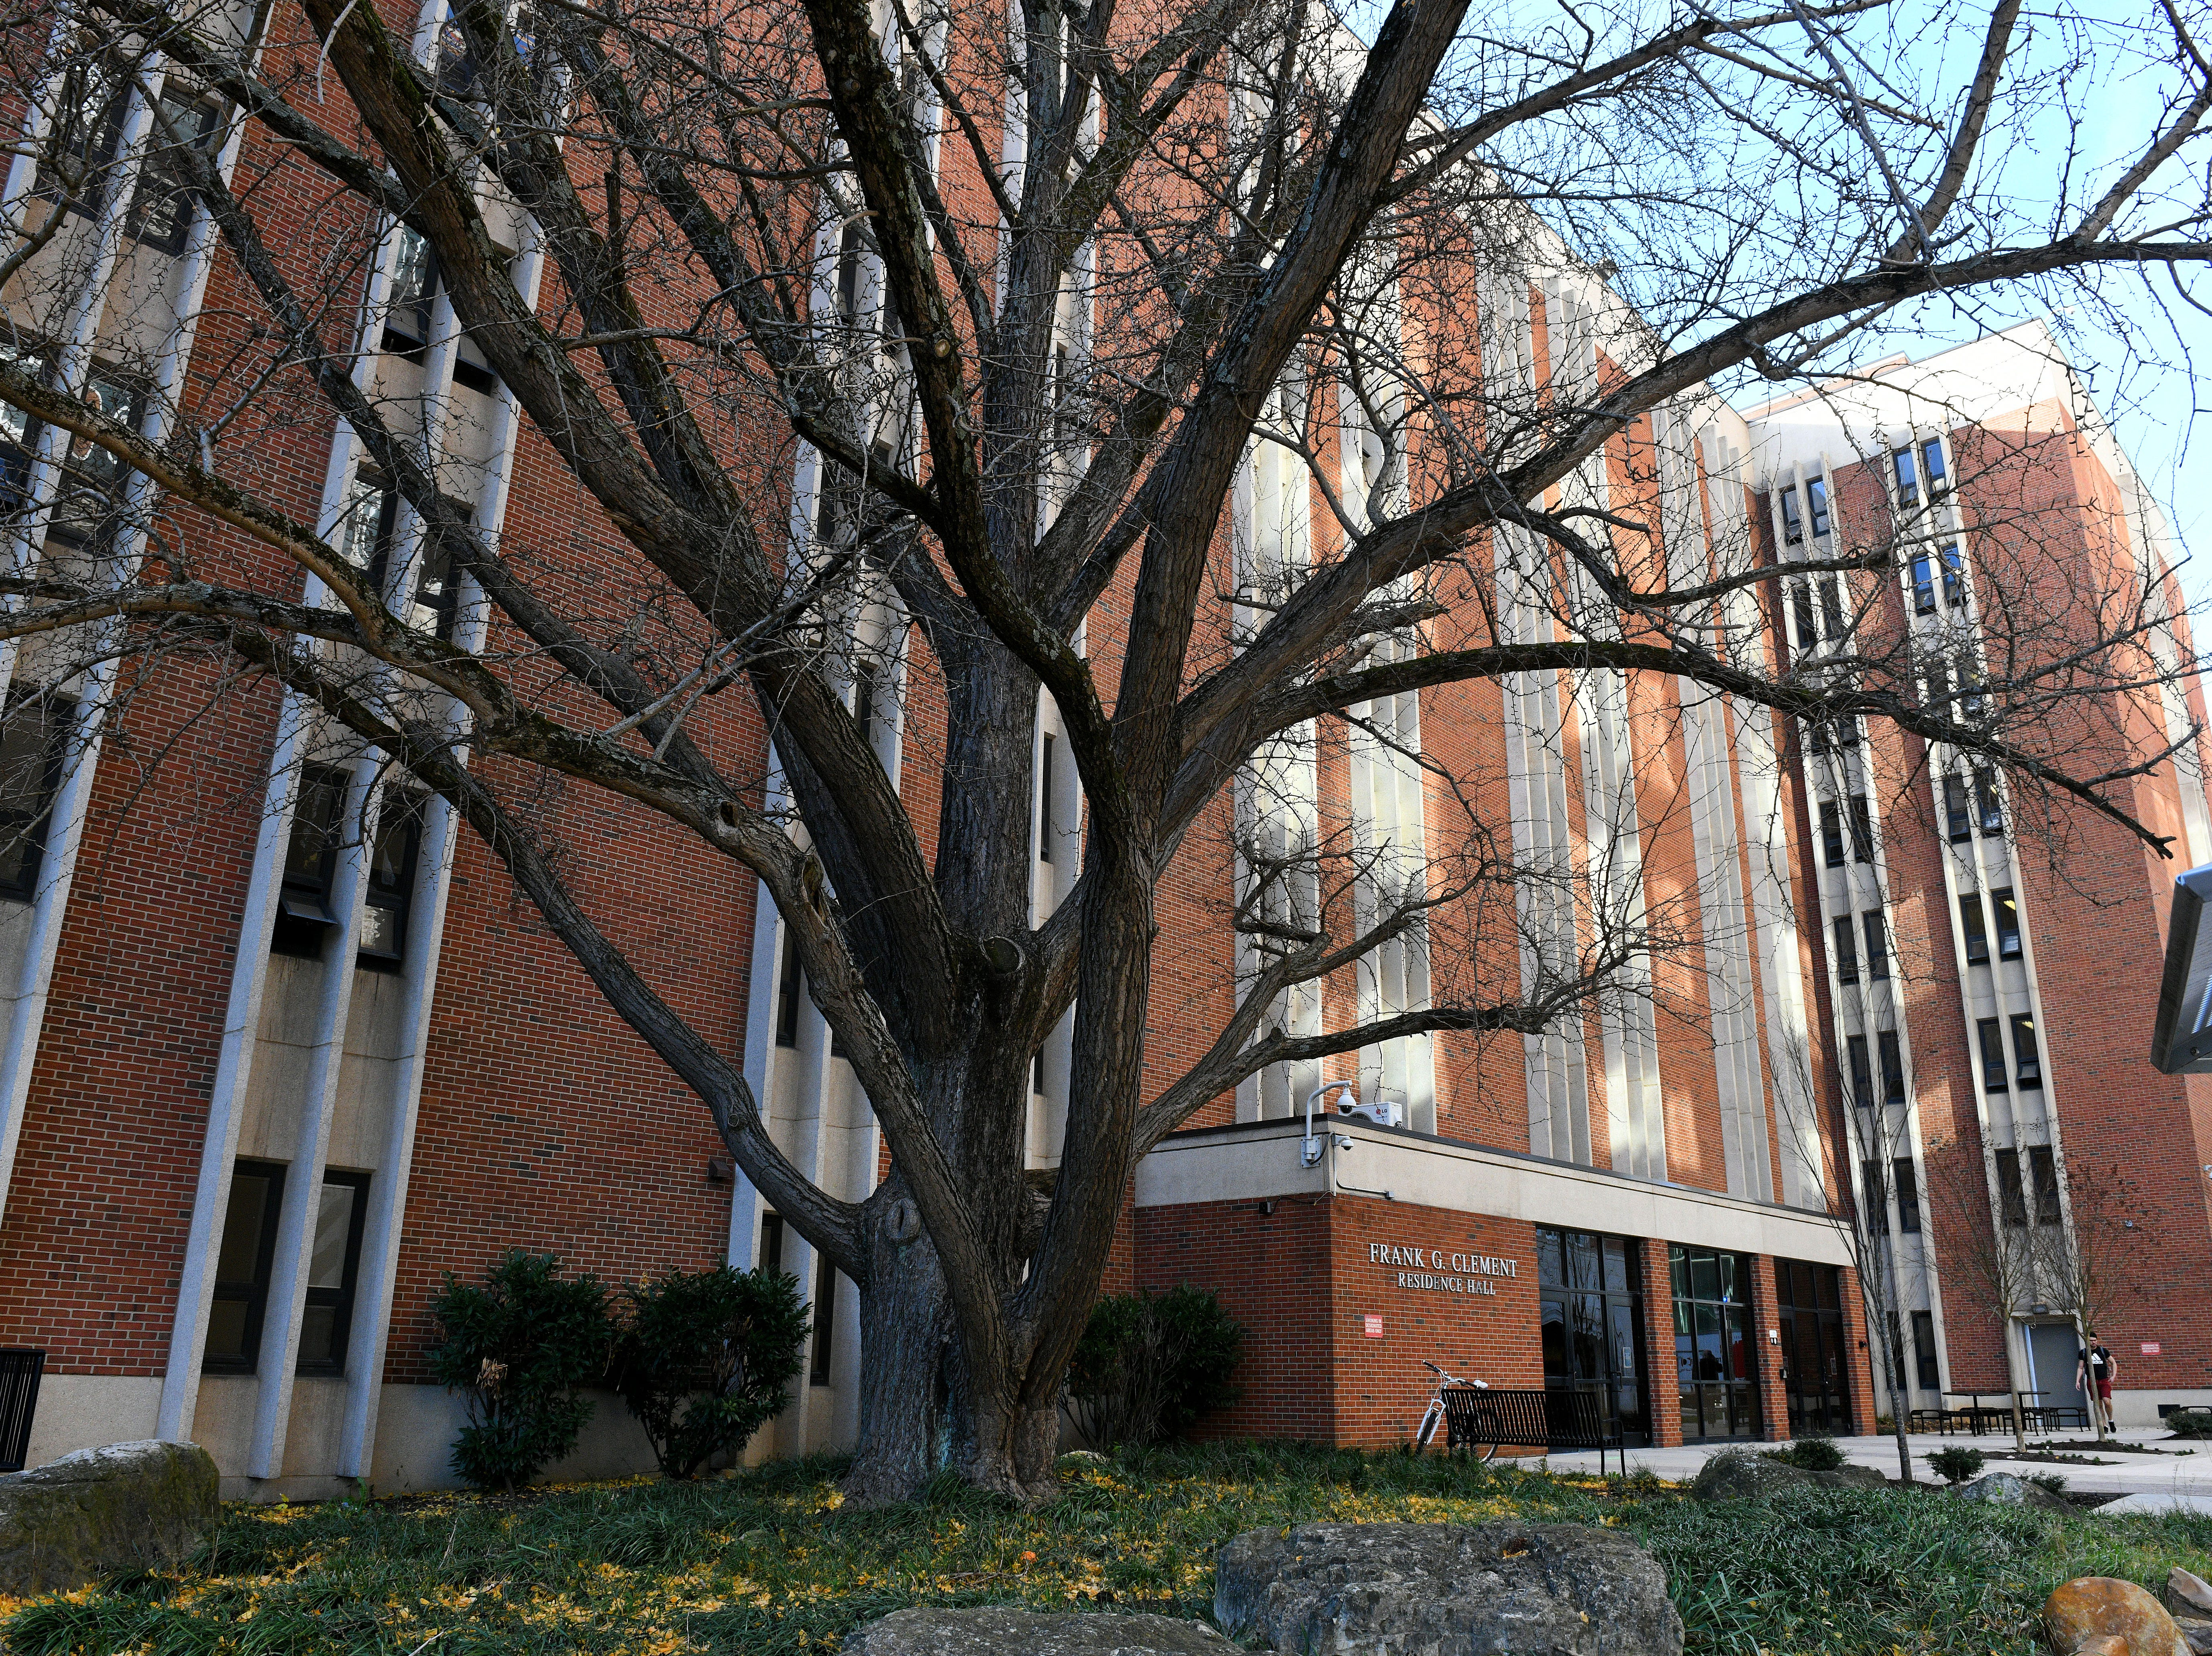 Clement Hall, 1629 West Cumberland Avenue, Knoxville, on the UTK campus Monday, Dec. 3, 2018. Originally named Cumberland Hall, Clement Hall was renamed in honor of former Governor Frank G. Clement. Clement Hall is consists of 8 floors and 698 spaces in traditional suite-style rooms.